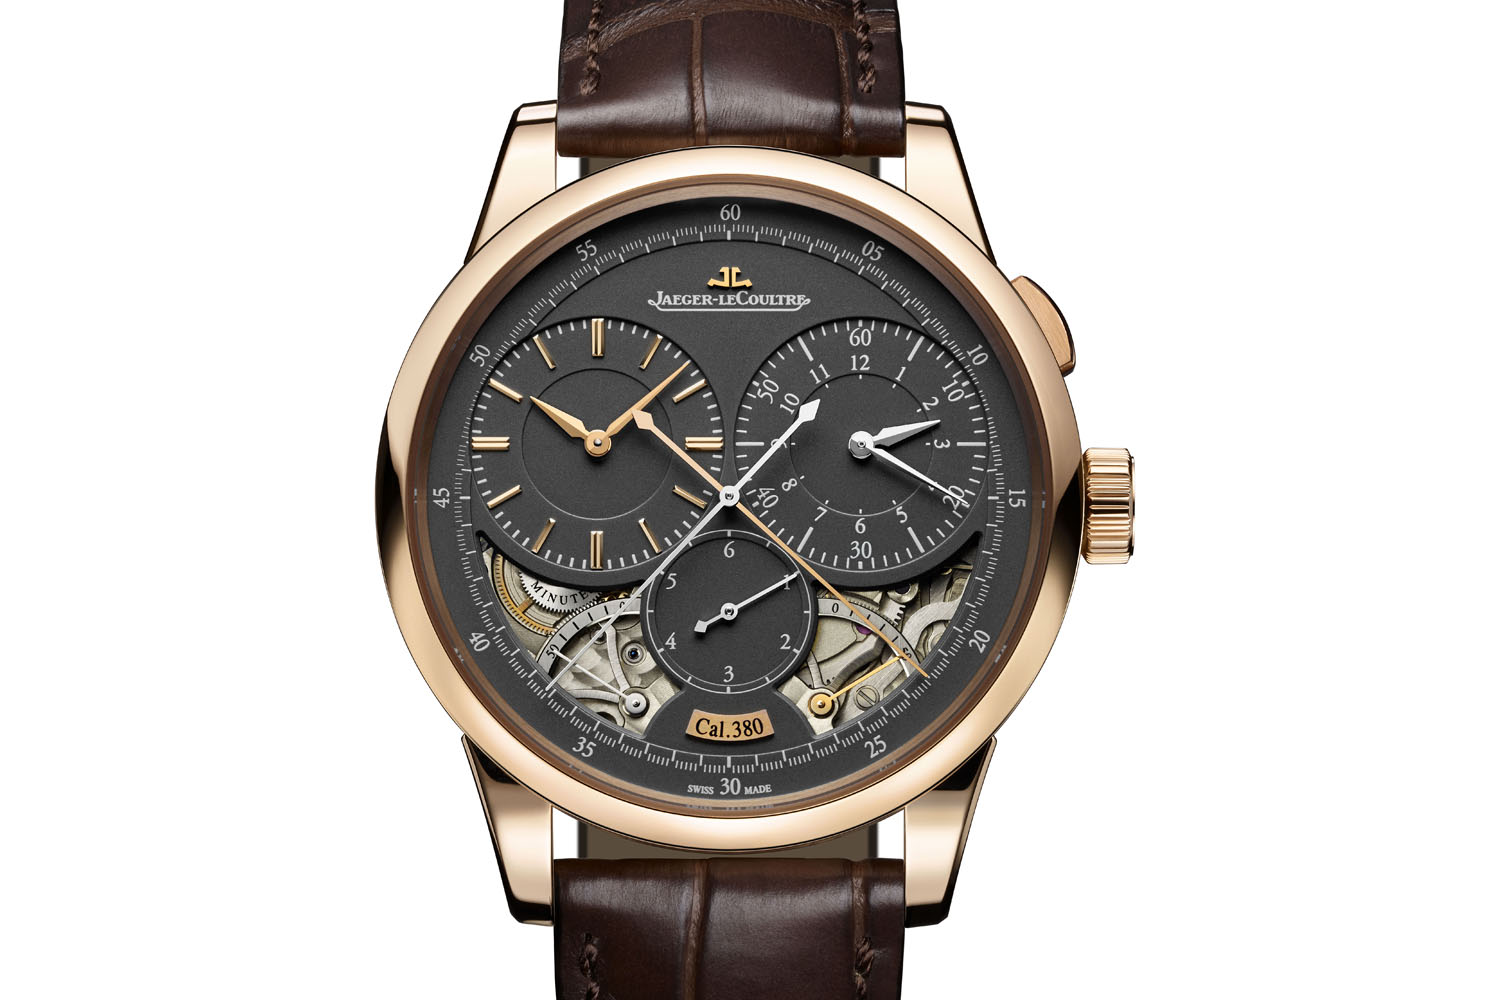 Jaeger-LeCoultre-Duometre-Chronograph-magnetite-grey-dial-S-HH-2017.jpg